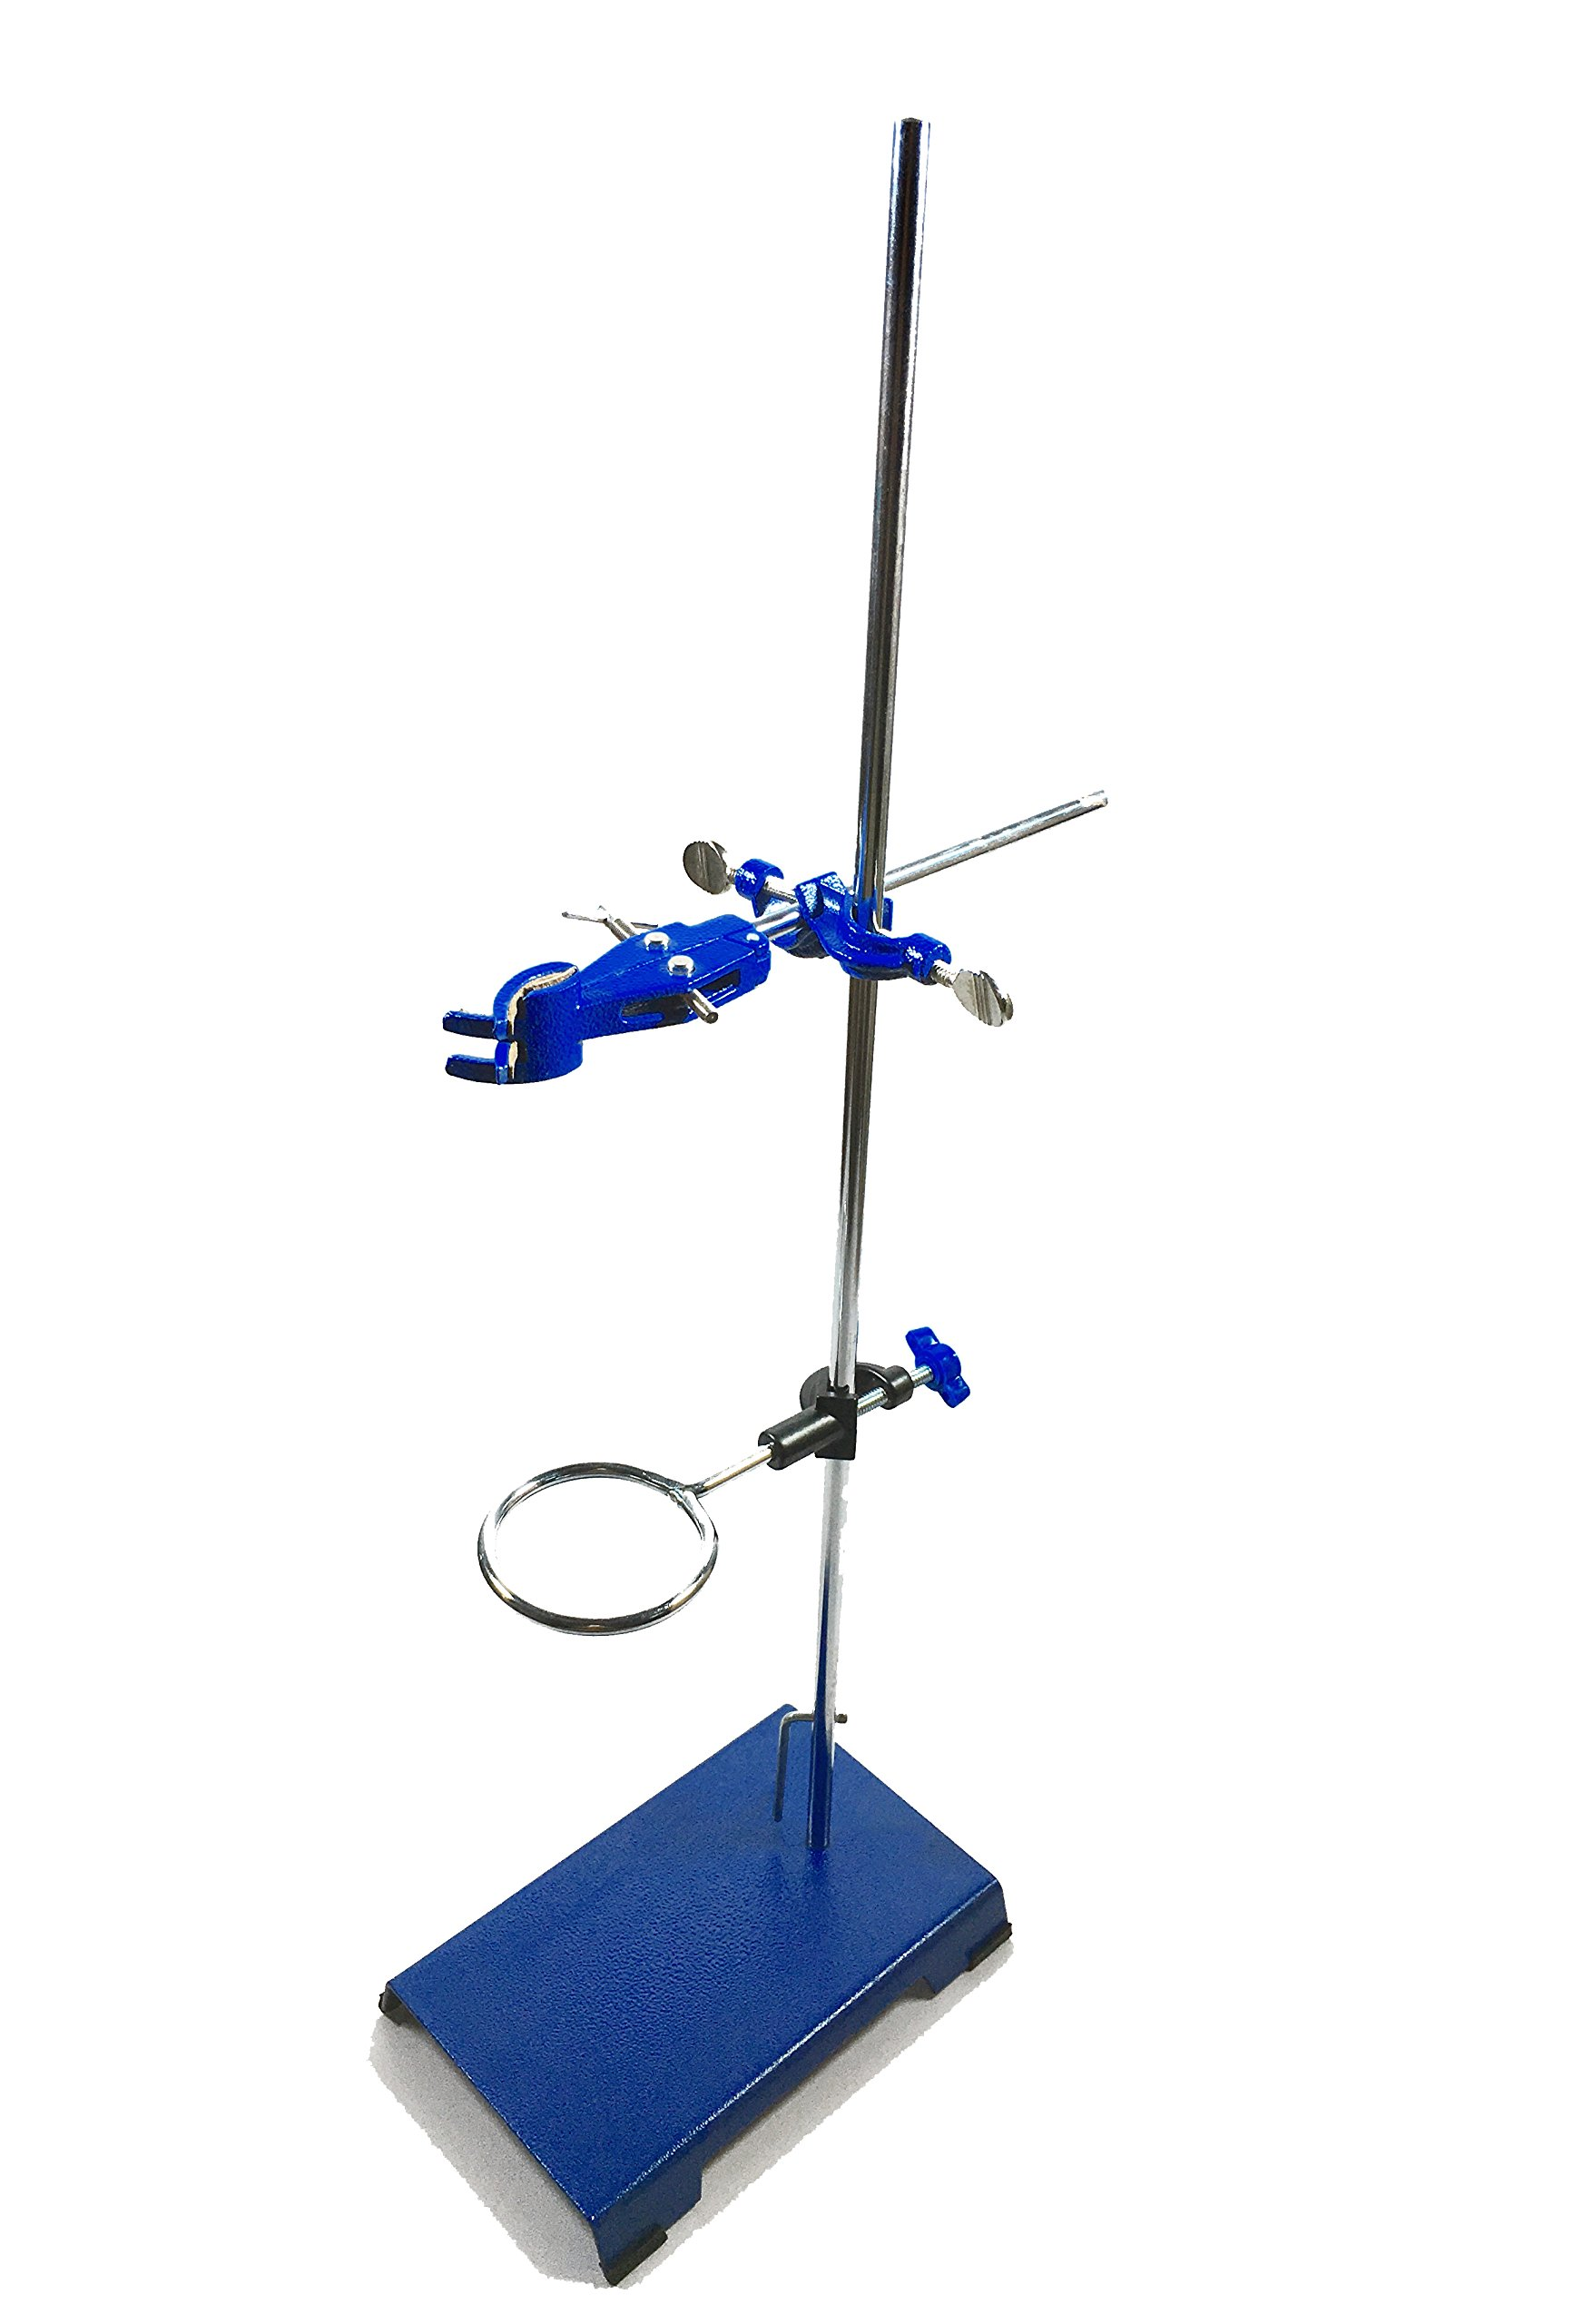 Sciencent Support Stand Ring Stand 8'' x 5'' Coated Base Size - 24'' Corrosion Resistant Rod - Retort Ring (2.5'' Dia) and Cork Lined Burette Clamp with Boss Head Heavy Industrial Grade Retort Stand by SCIENCENT WITH DEVICE